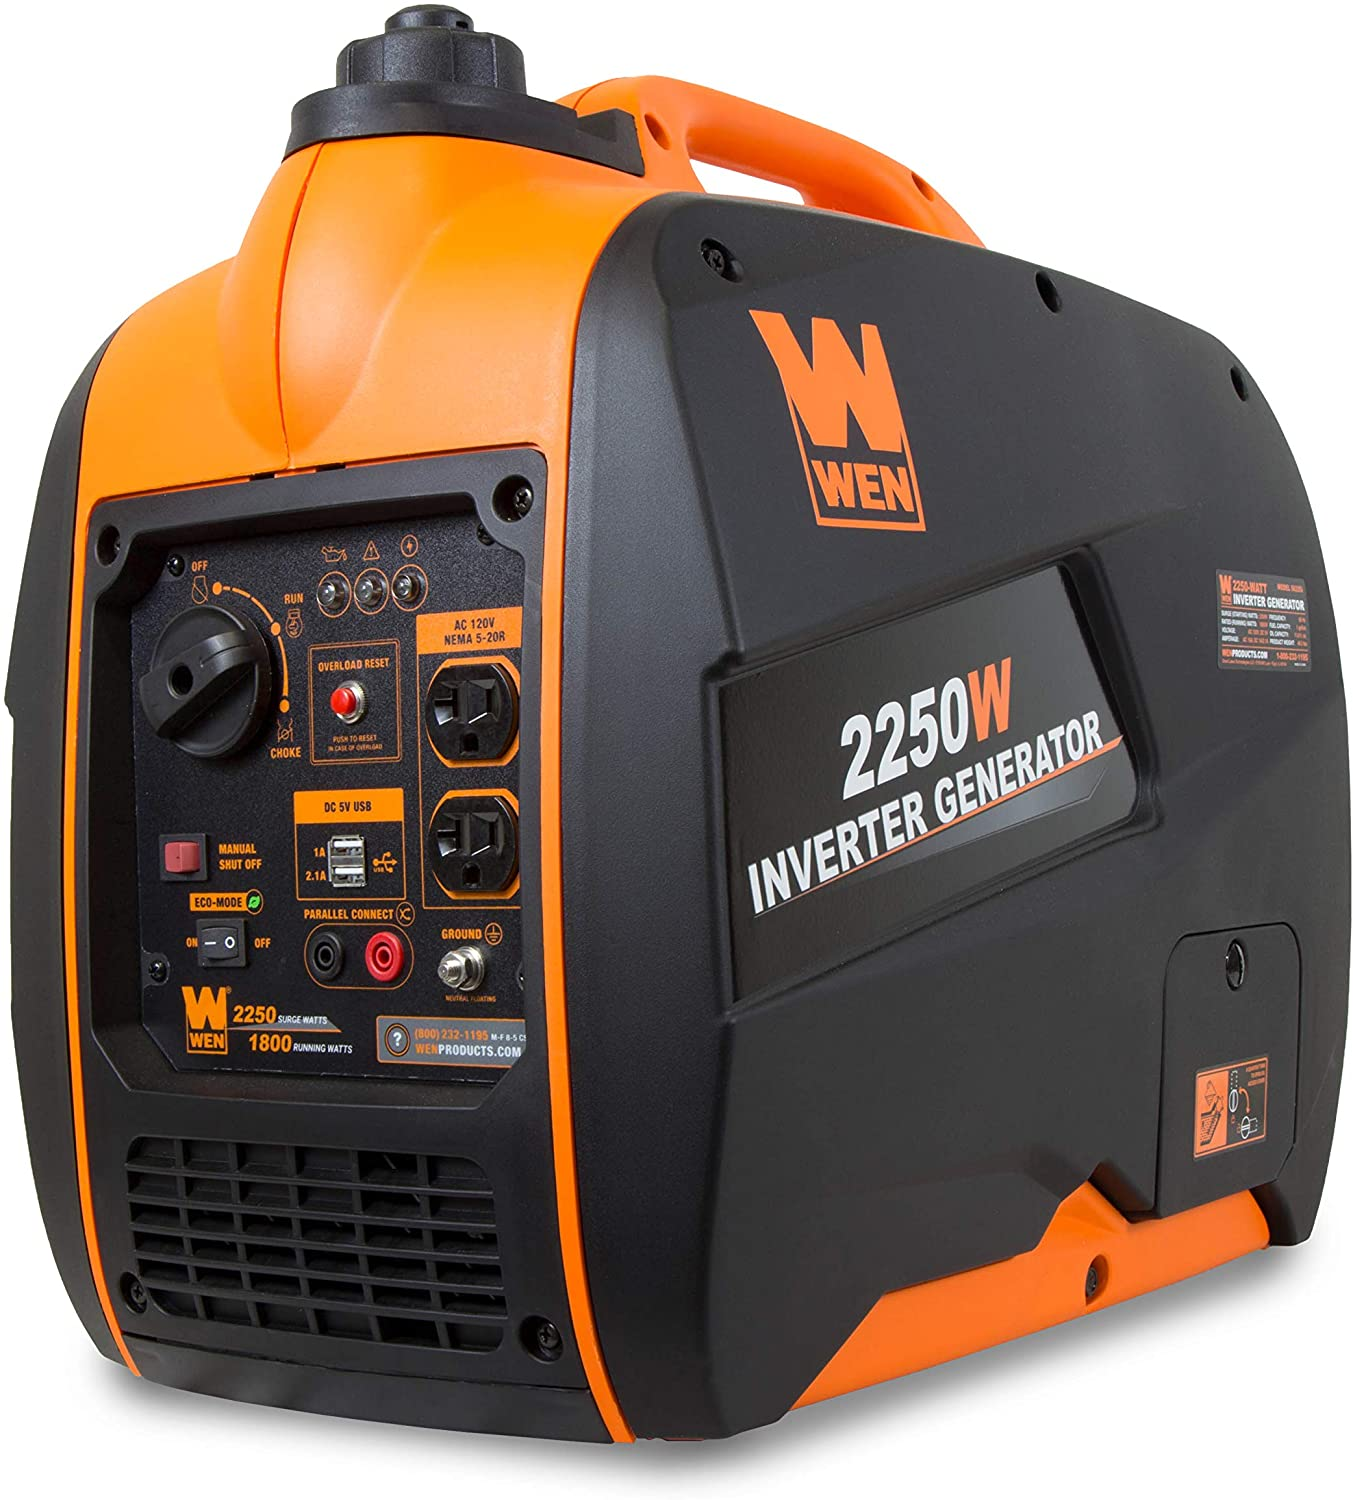 CARB Compliant WEN 56225i 2250 Watt Gas Powered Portable Inverter Generator with Fuel Shut Off